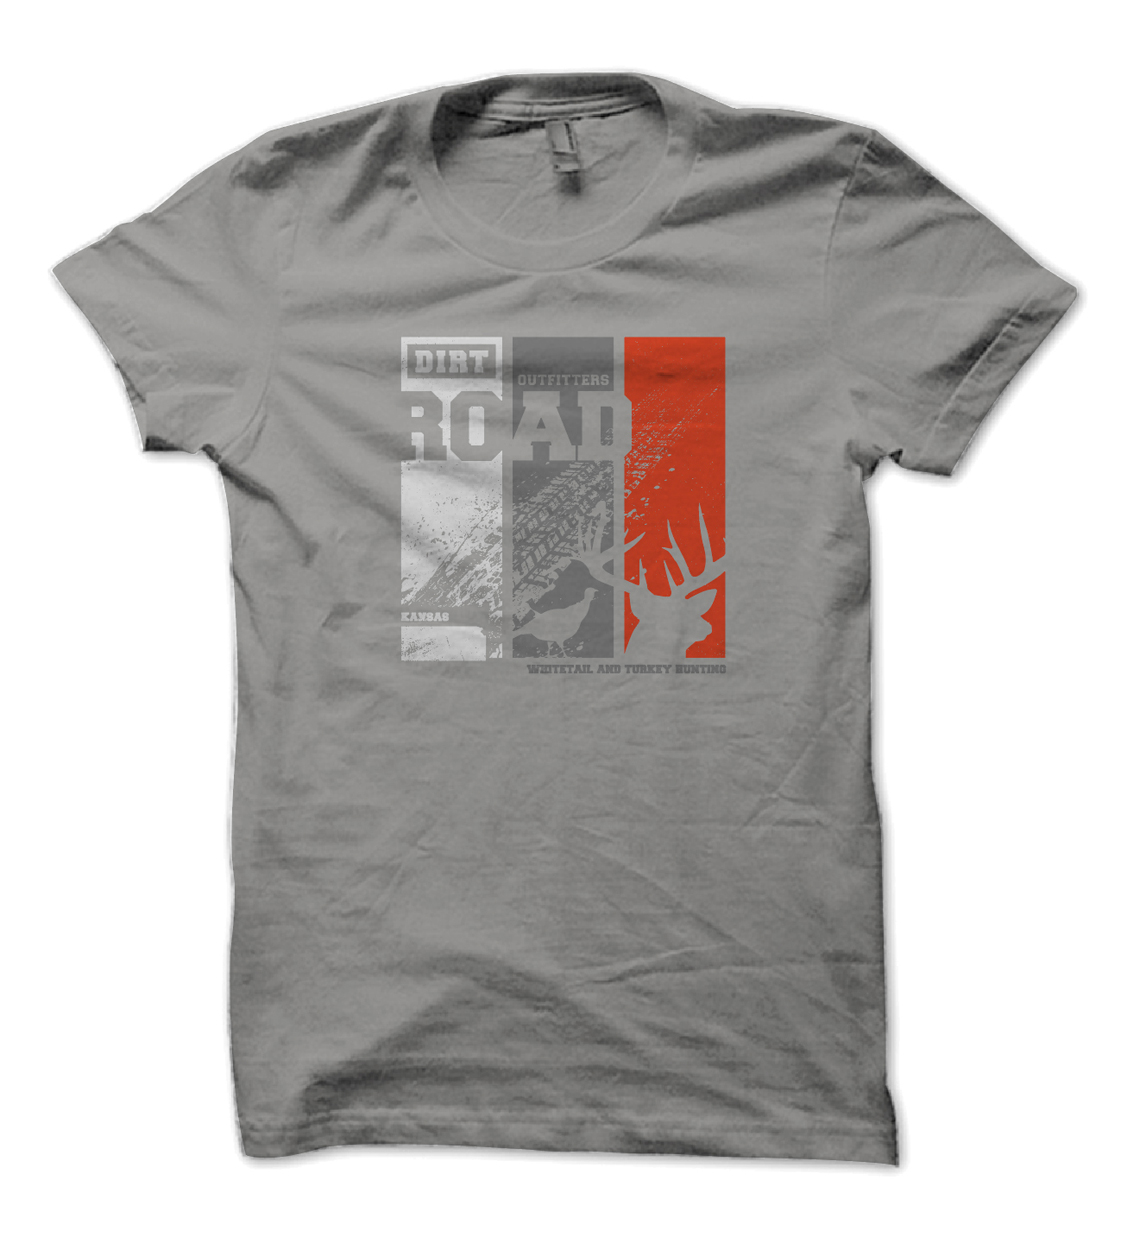 Dirt Road Outfitters Whitetail Turkey Lifestyle Tee Design